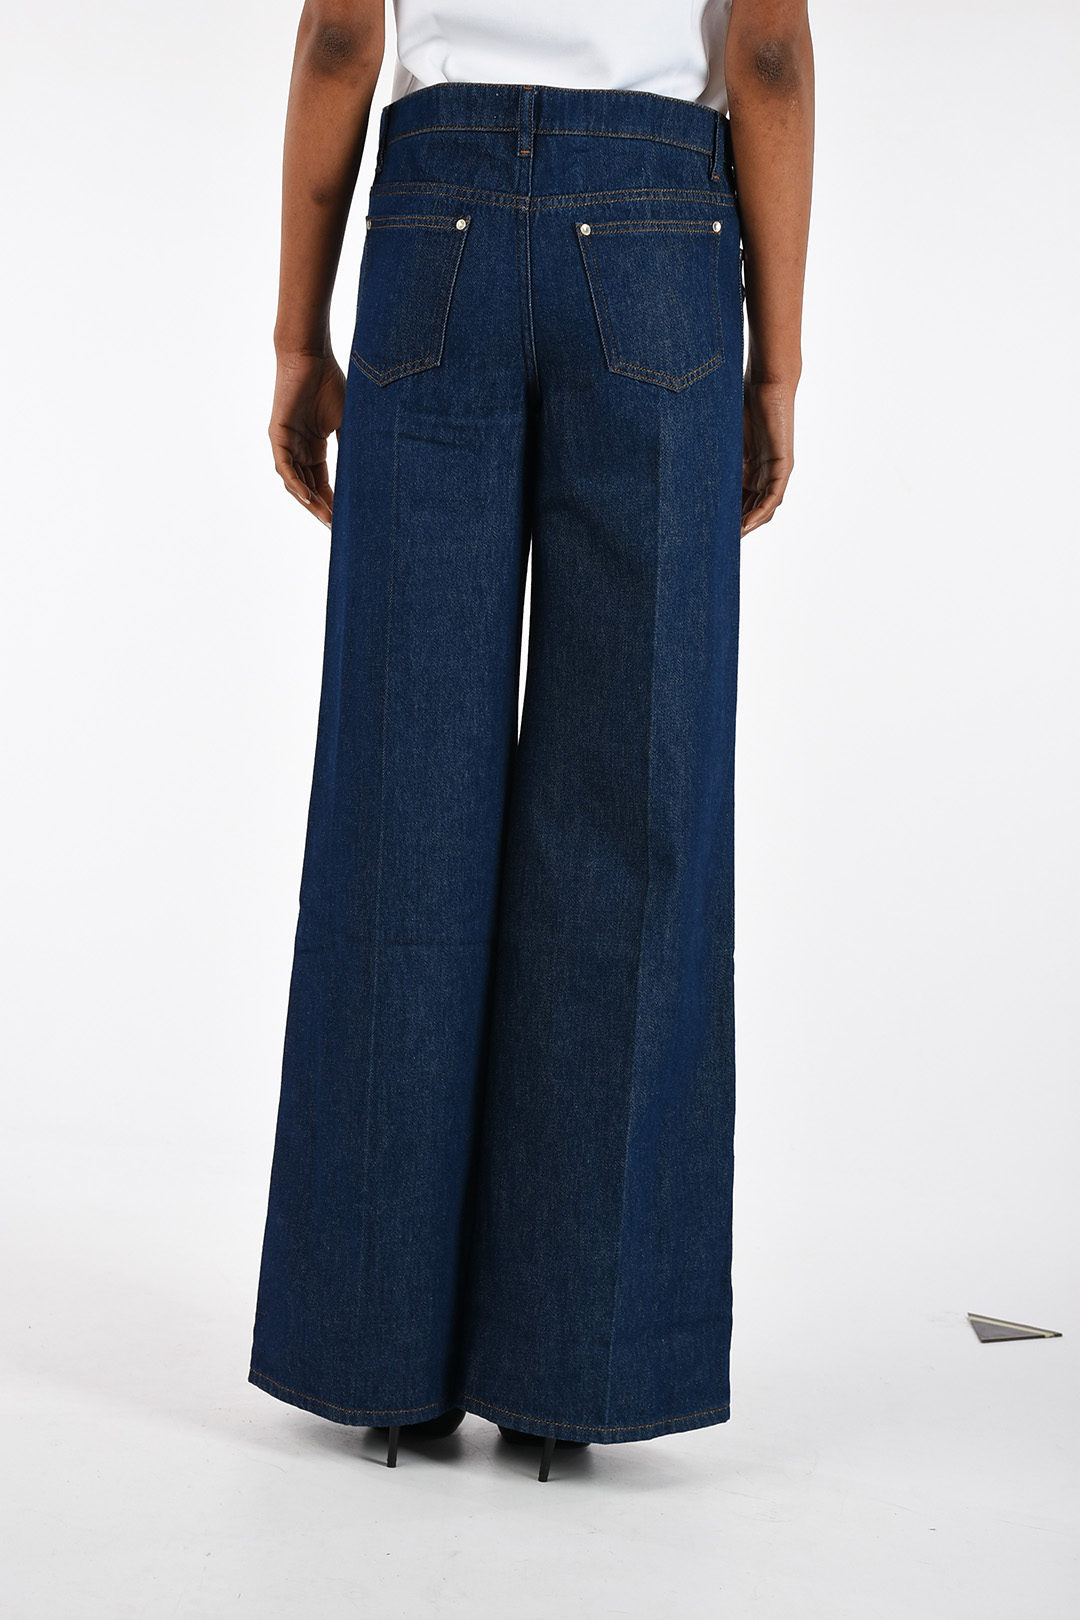 daaca245b Valentino RED 30cm Jeans with Lateral Buttons women - Glamood Outlet